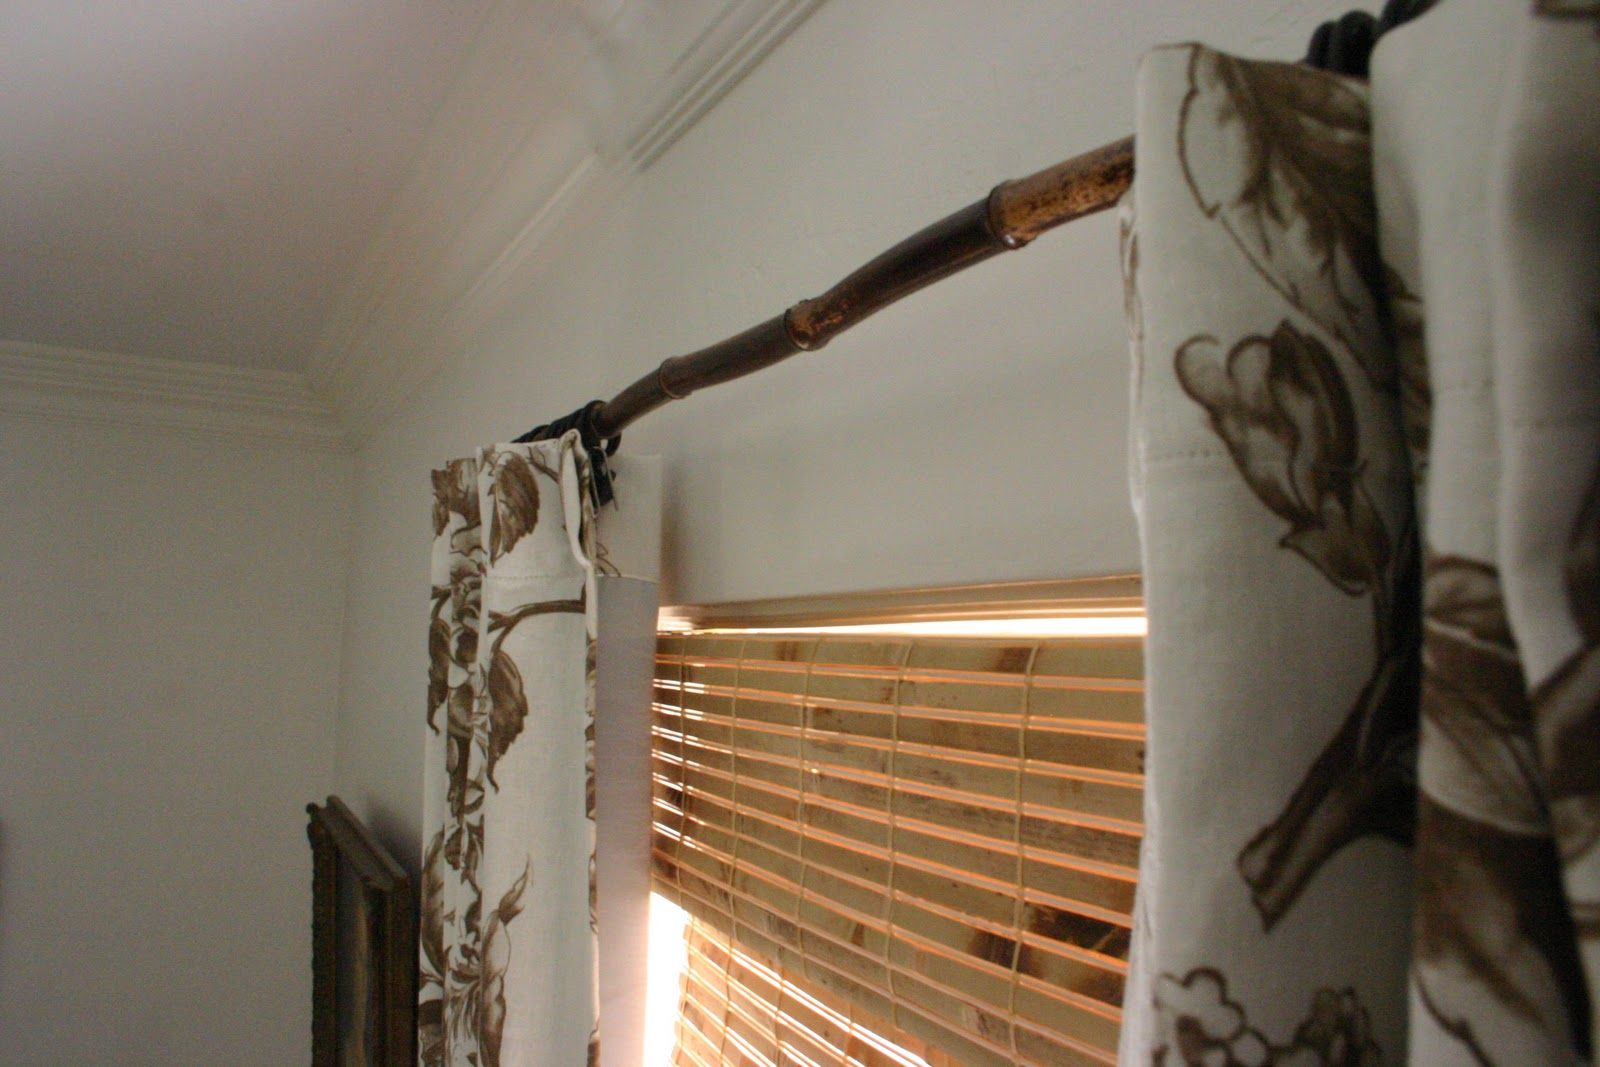 Tree branch curtain rods - Bamboo Drapery Rod Repurpose Recycle Reuse Creative Ideas